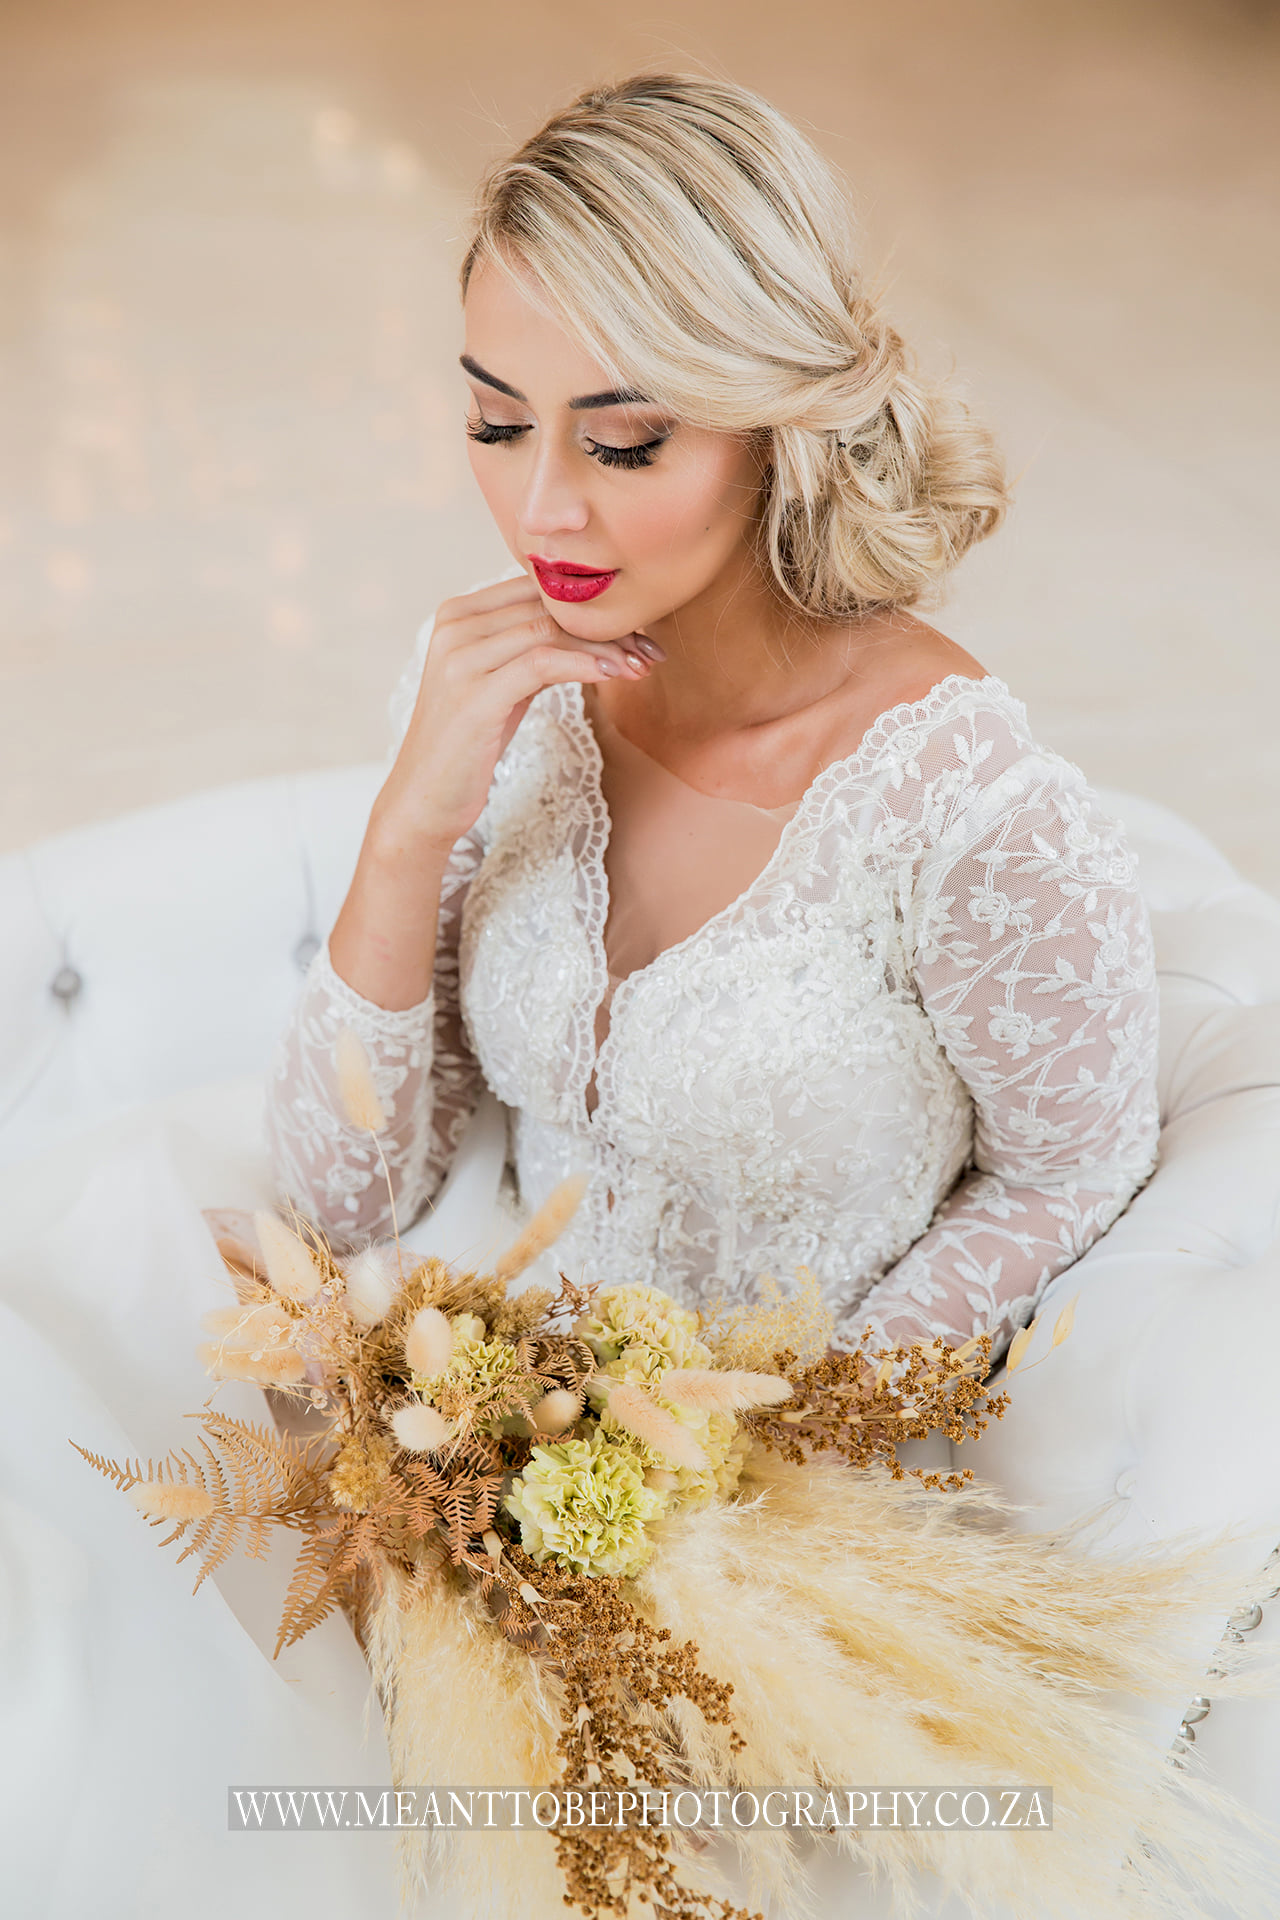 Bridal Hair and Makeup done by Leedra Glam Cape Town